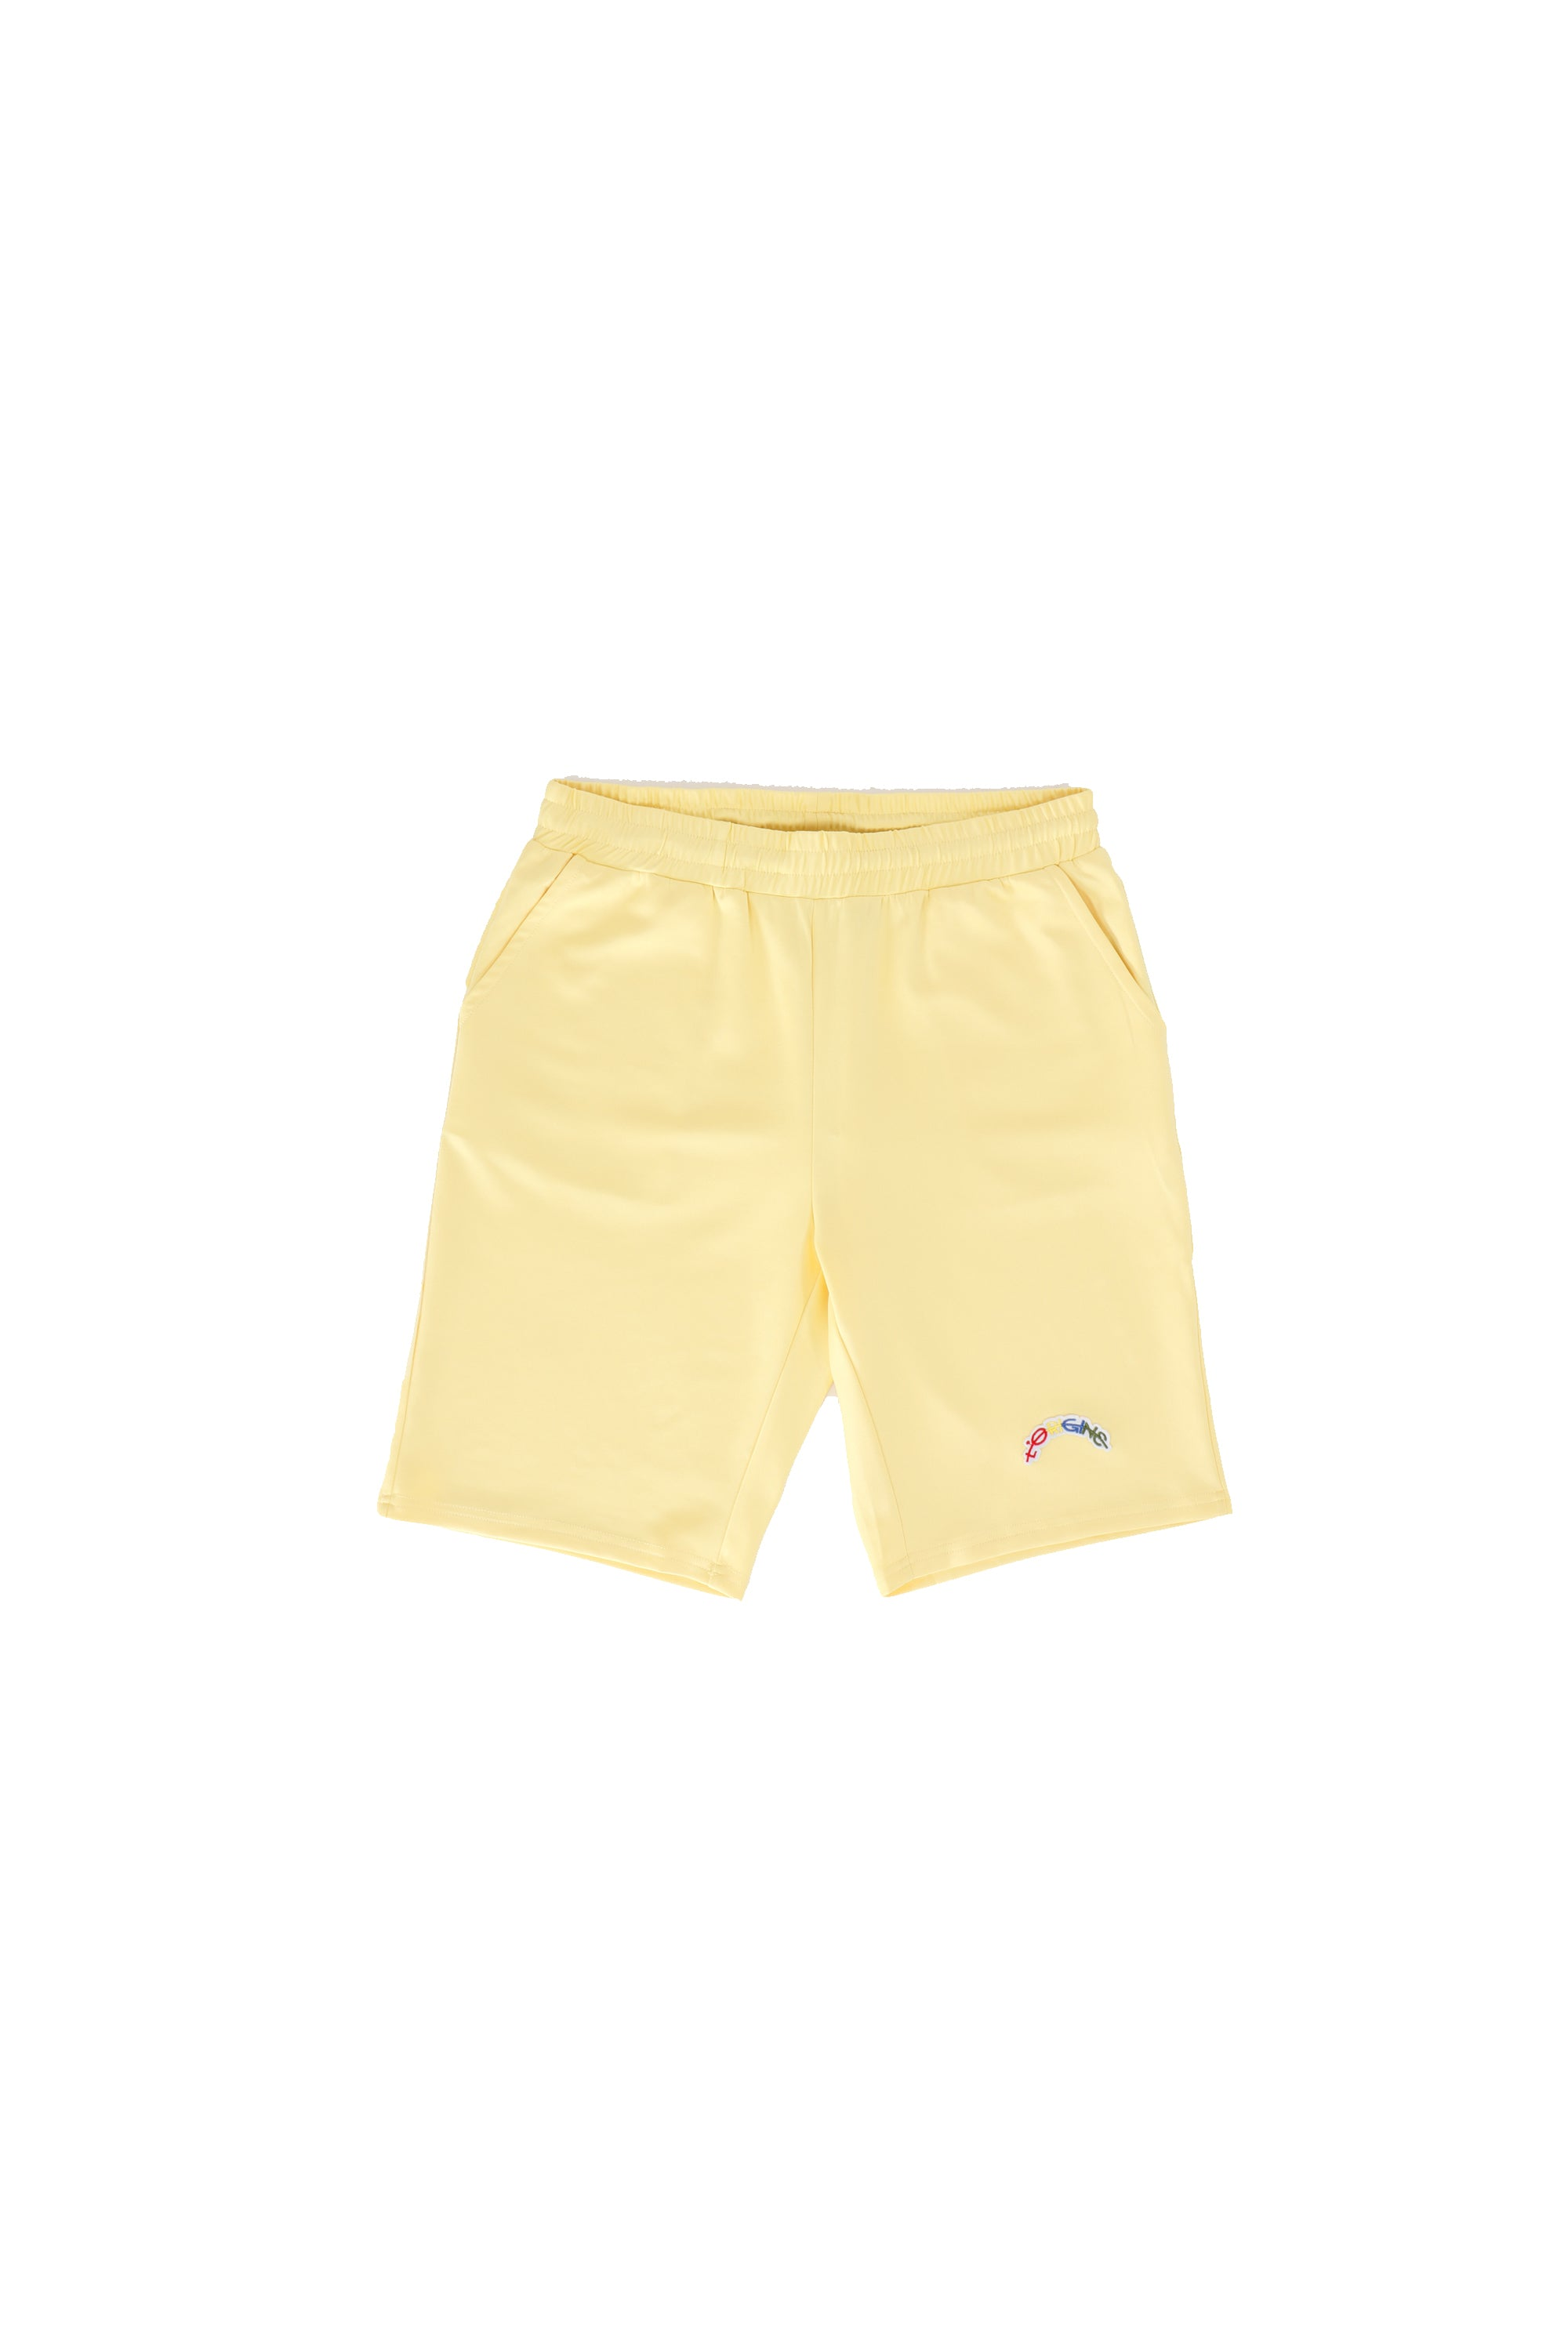 Kevin Shorts L'ORIGINE Rainbow Yellow